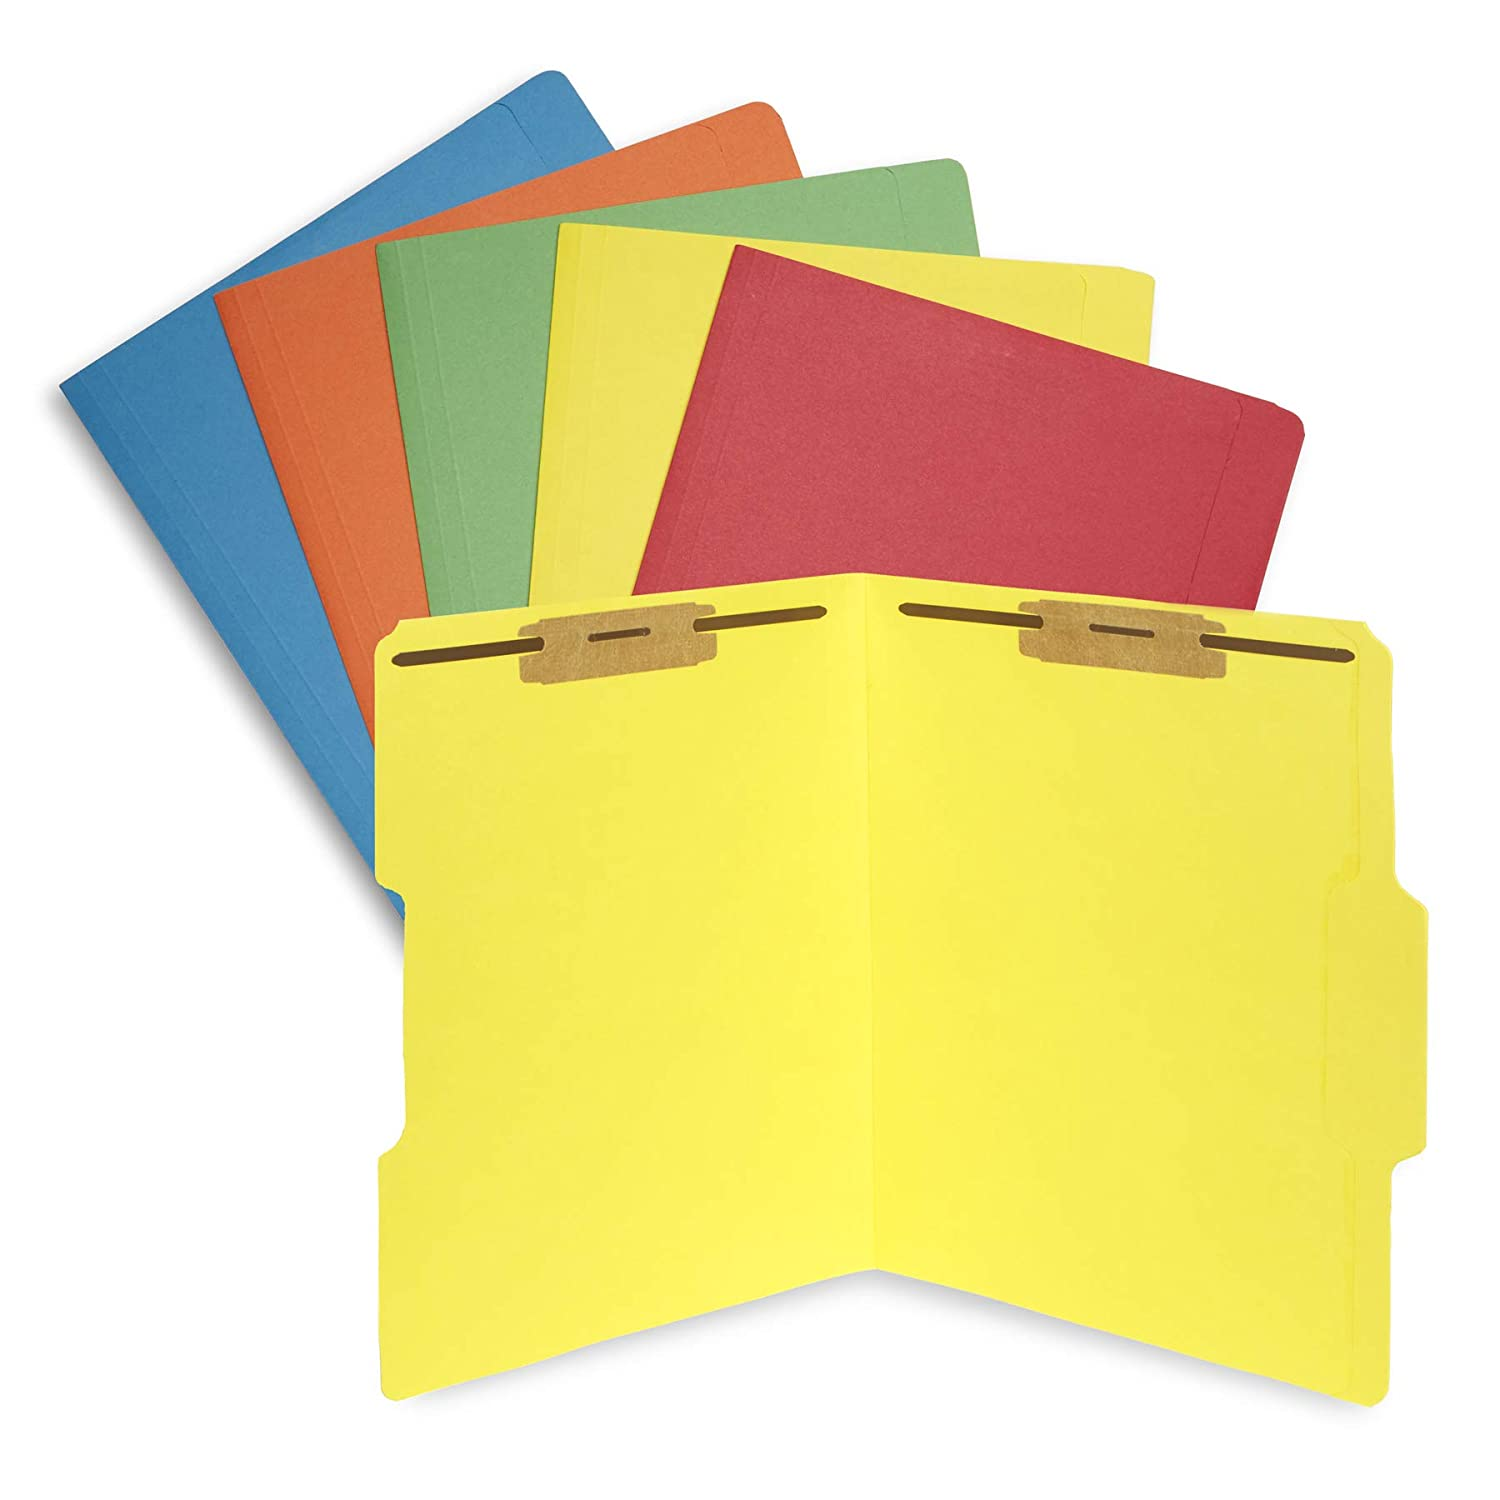 50 Assorted Color Fastener File Folders - 1/3 Cut Reinforced tab - Durable 2 Prongs Bonded Fastener Designed to Organize Standard Medical Files, Law Client Files, Office Reports - Letter Size